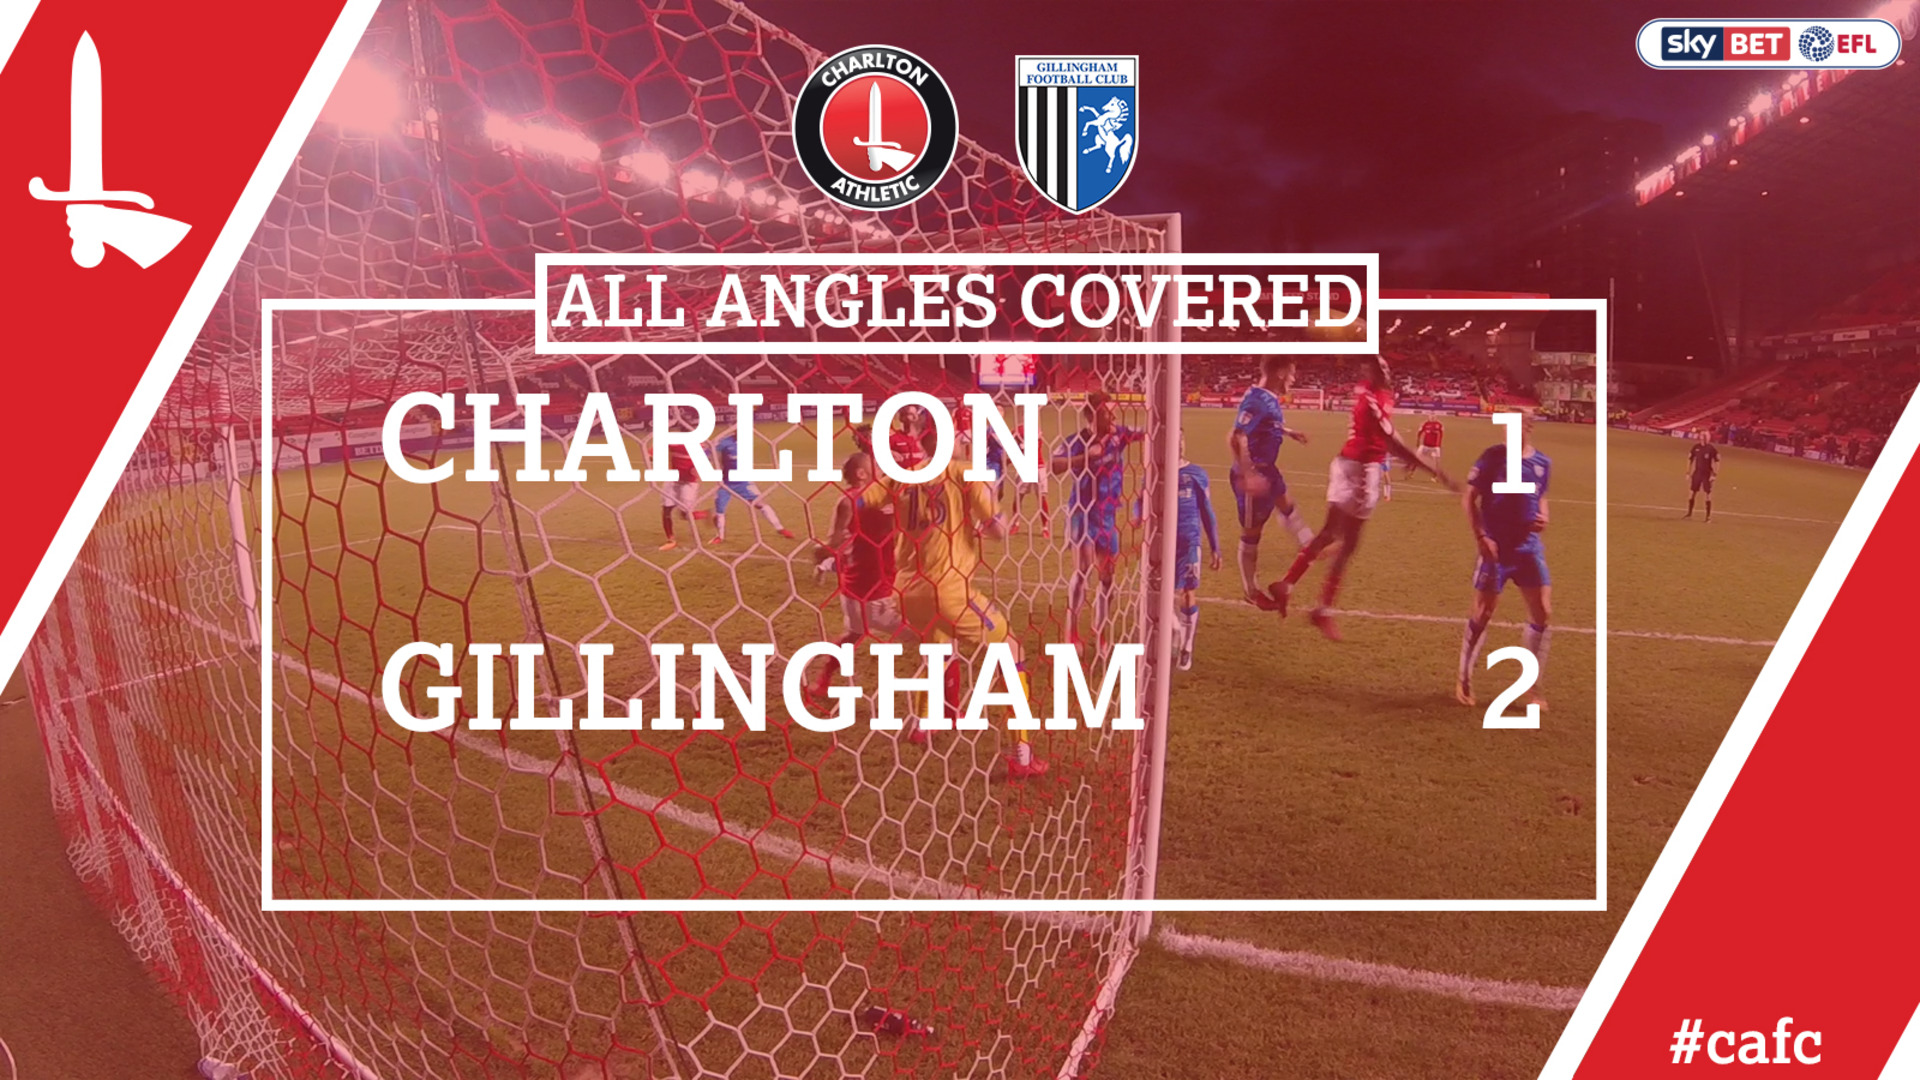 ALL ANGLES COVERED | Charlton 1 Gillingham 2